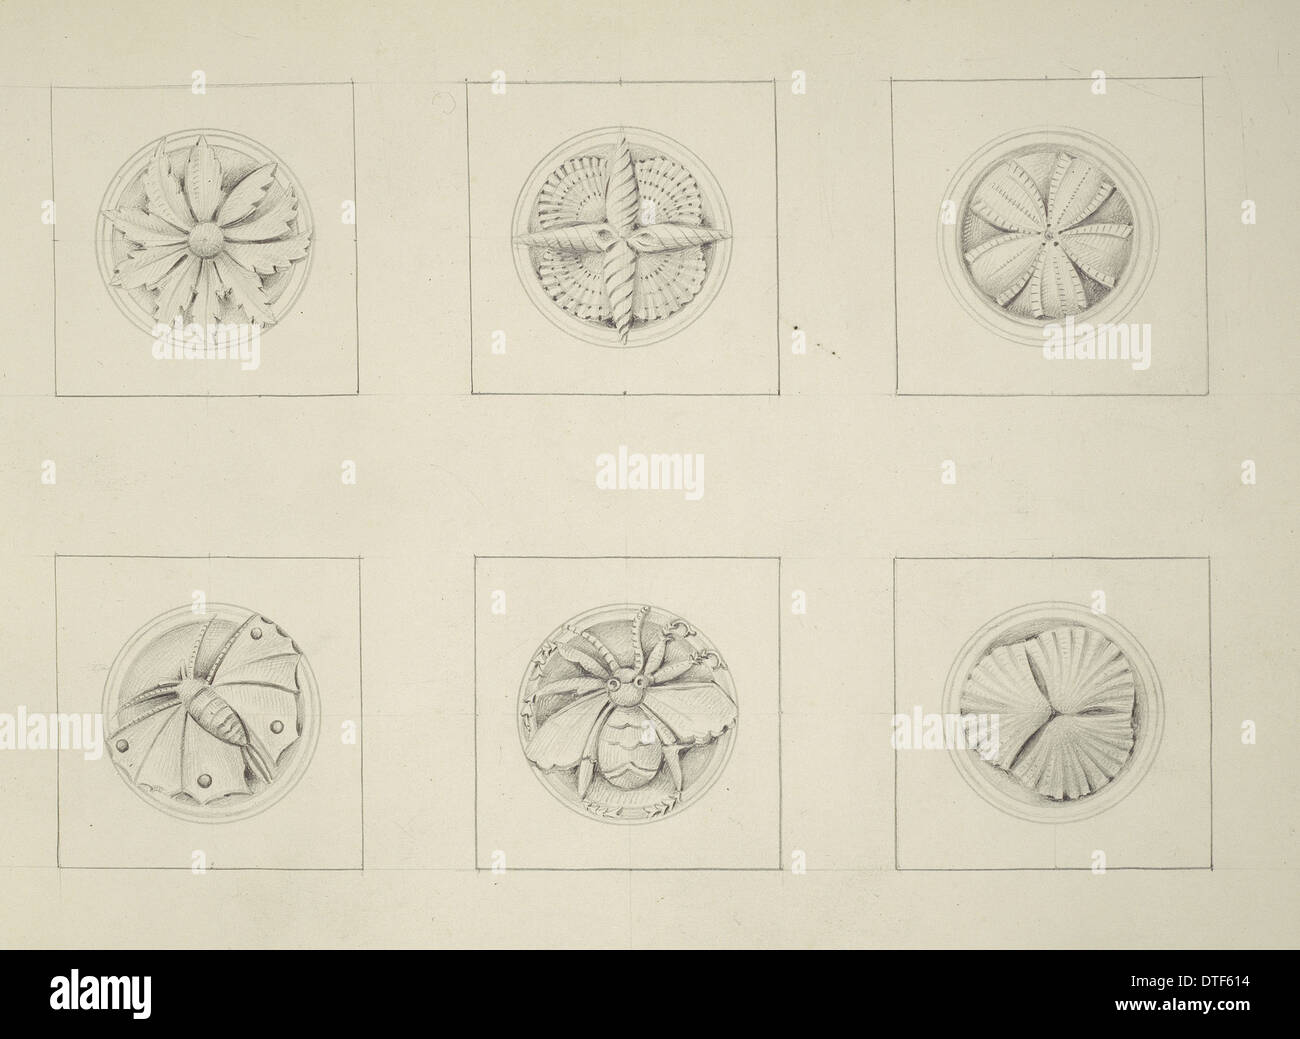 Designs for the Natural History Museum, by Alfred Waterhouse (1830-1905) - Stock Image